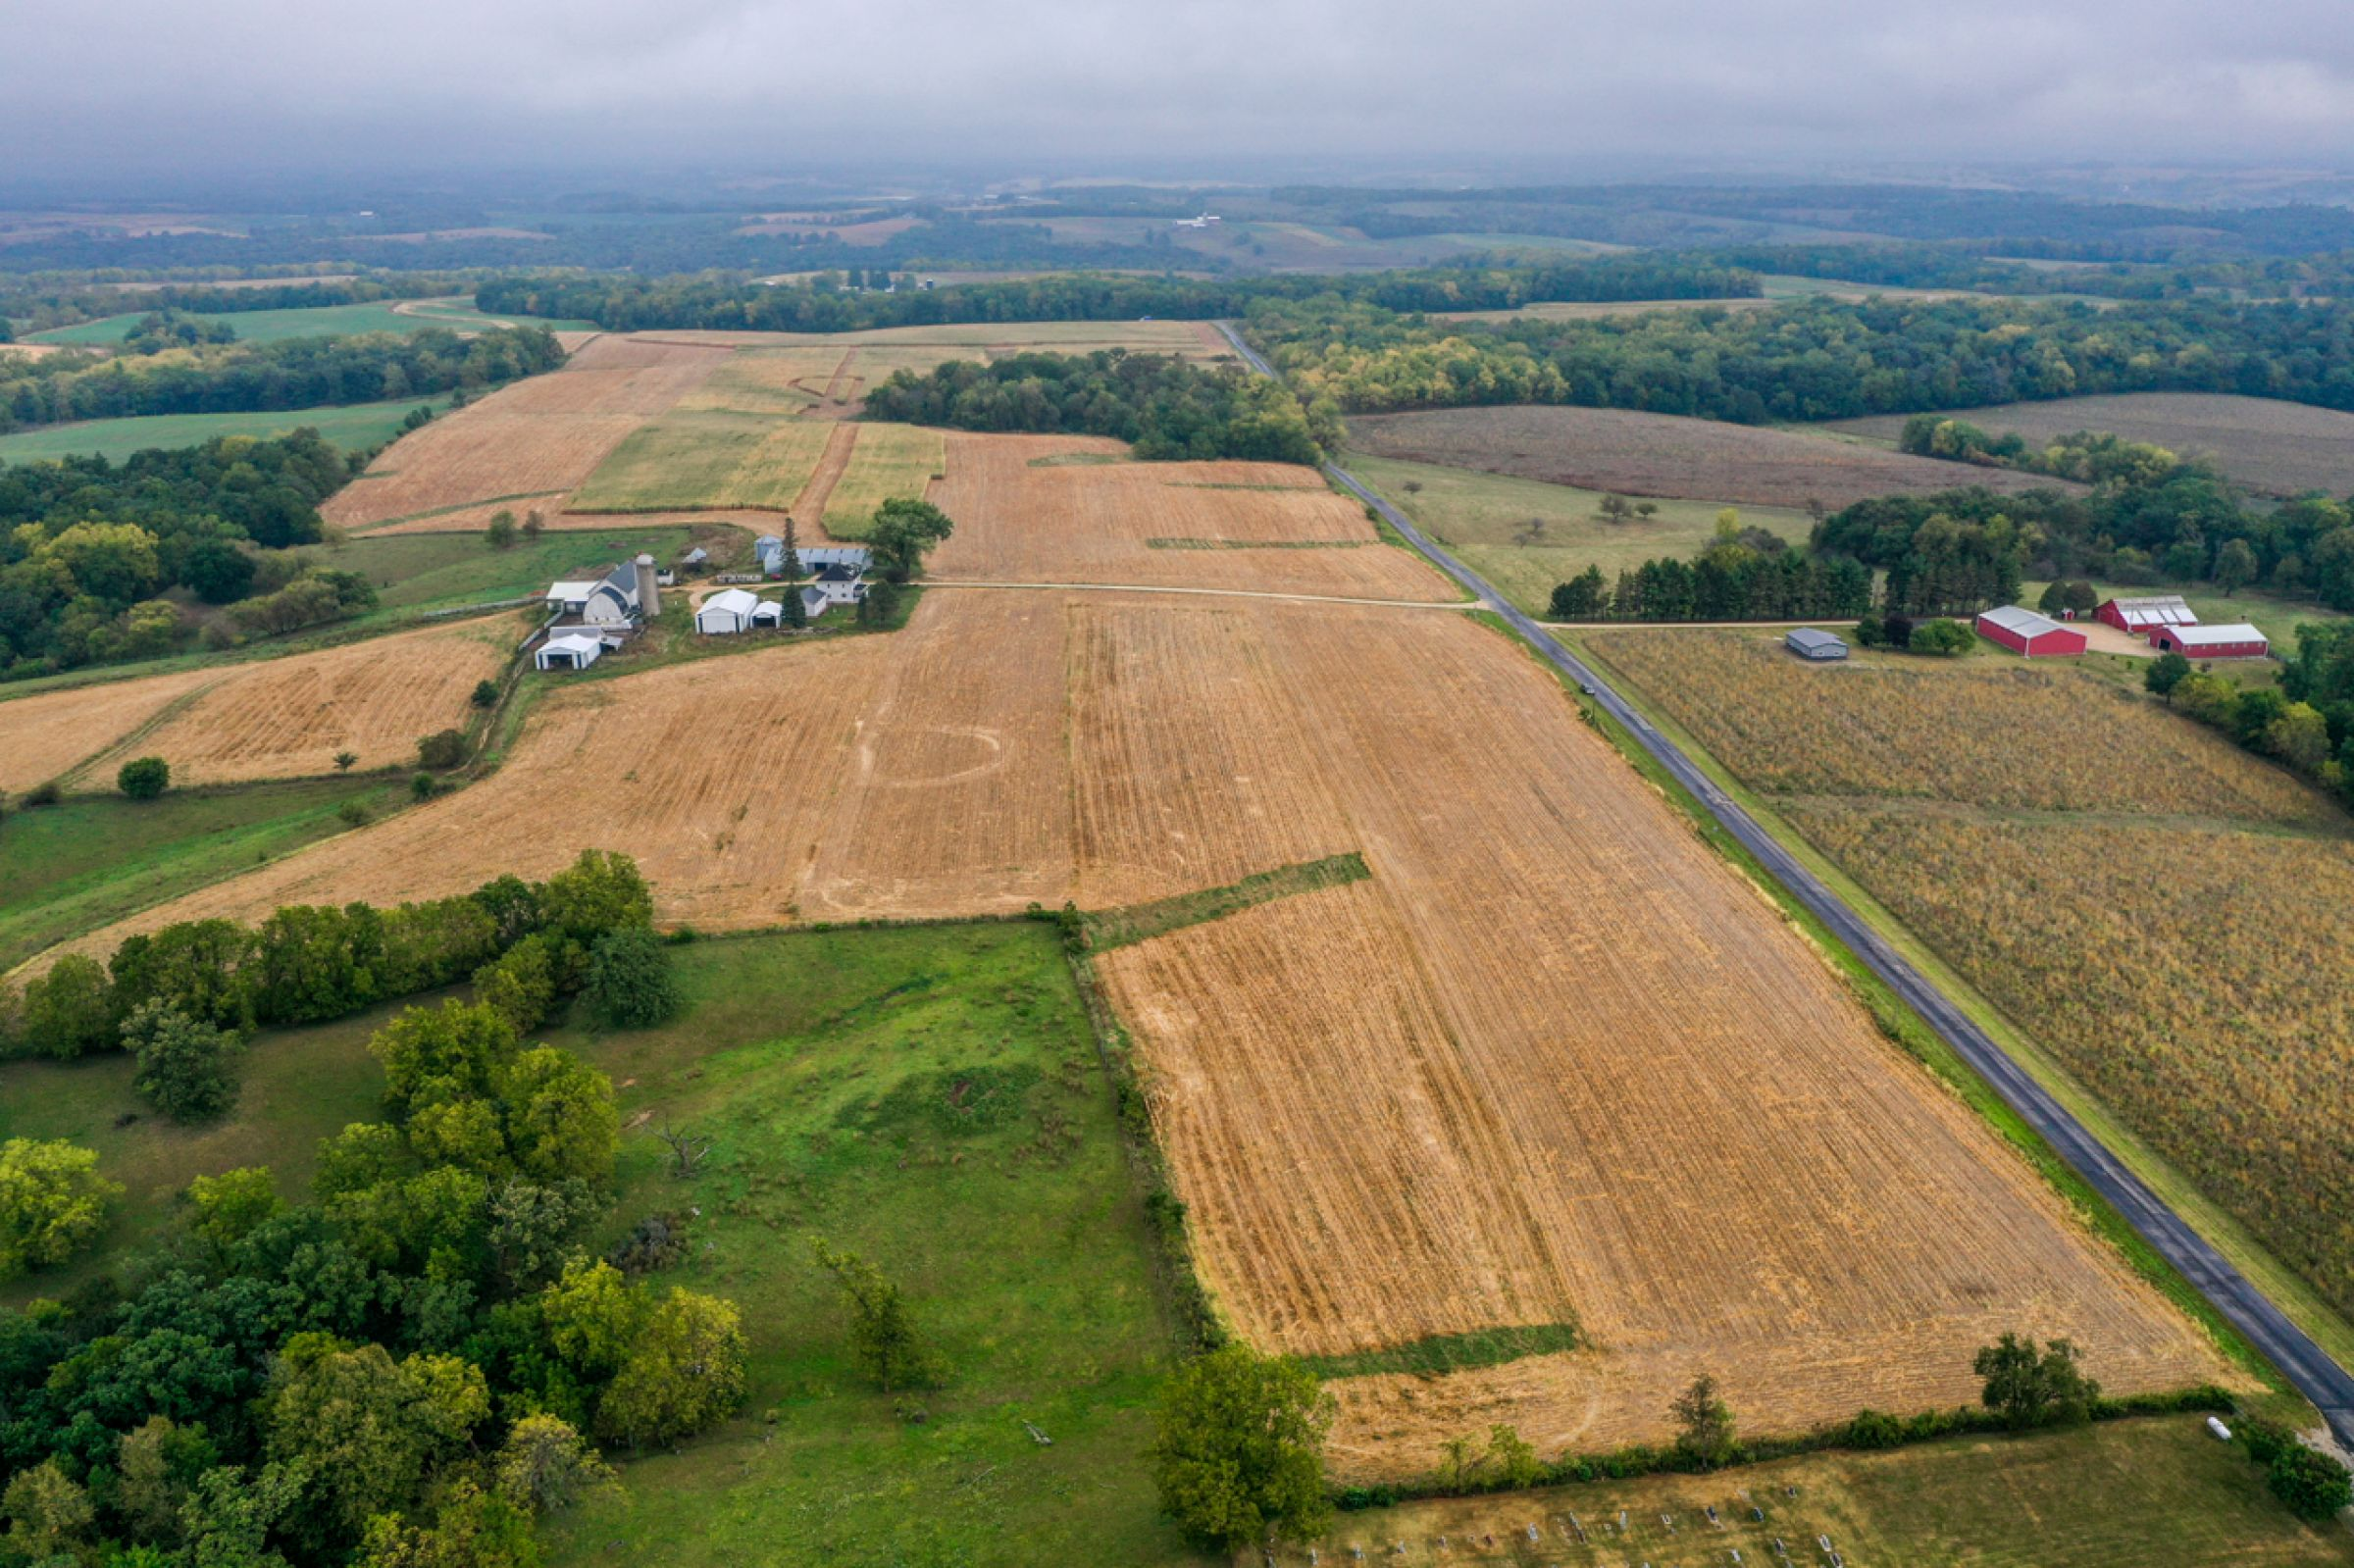 auctions-land-lafayette-county-wisconsin-138-acres-listing-number-15758-1-2021-09-21-155930.jpg